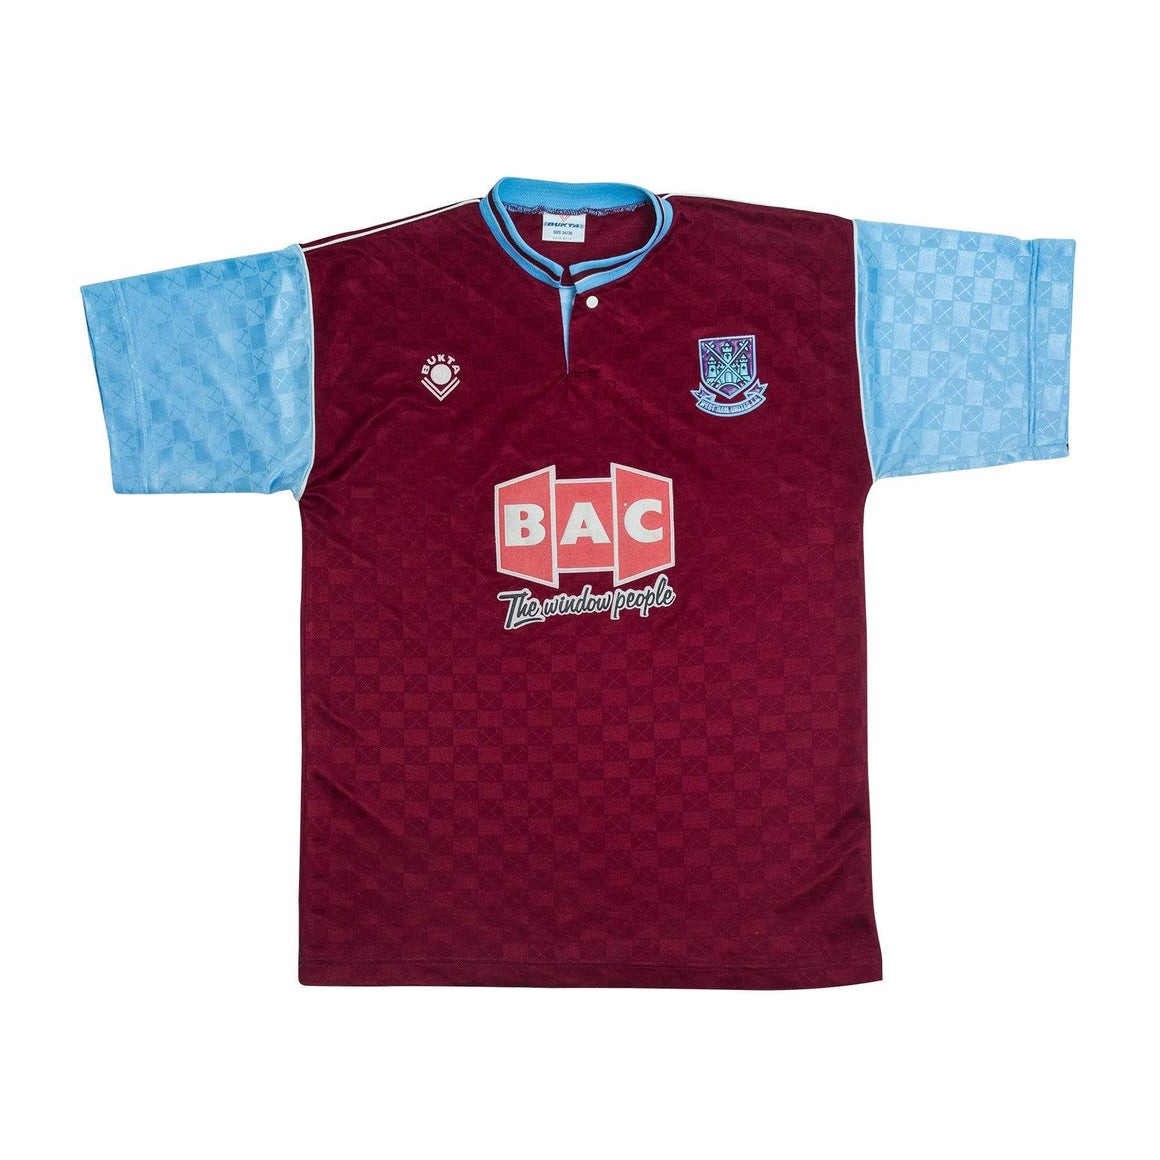 1989-91 West Ham home shirt XS - Football Shirt Collective